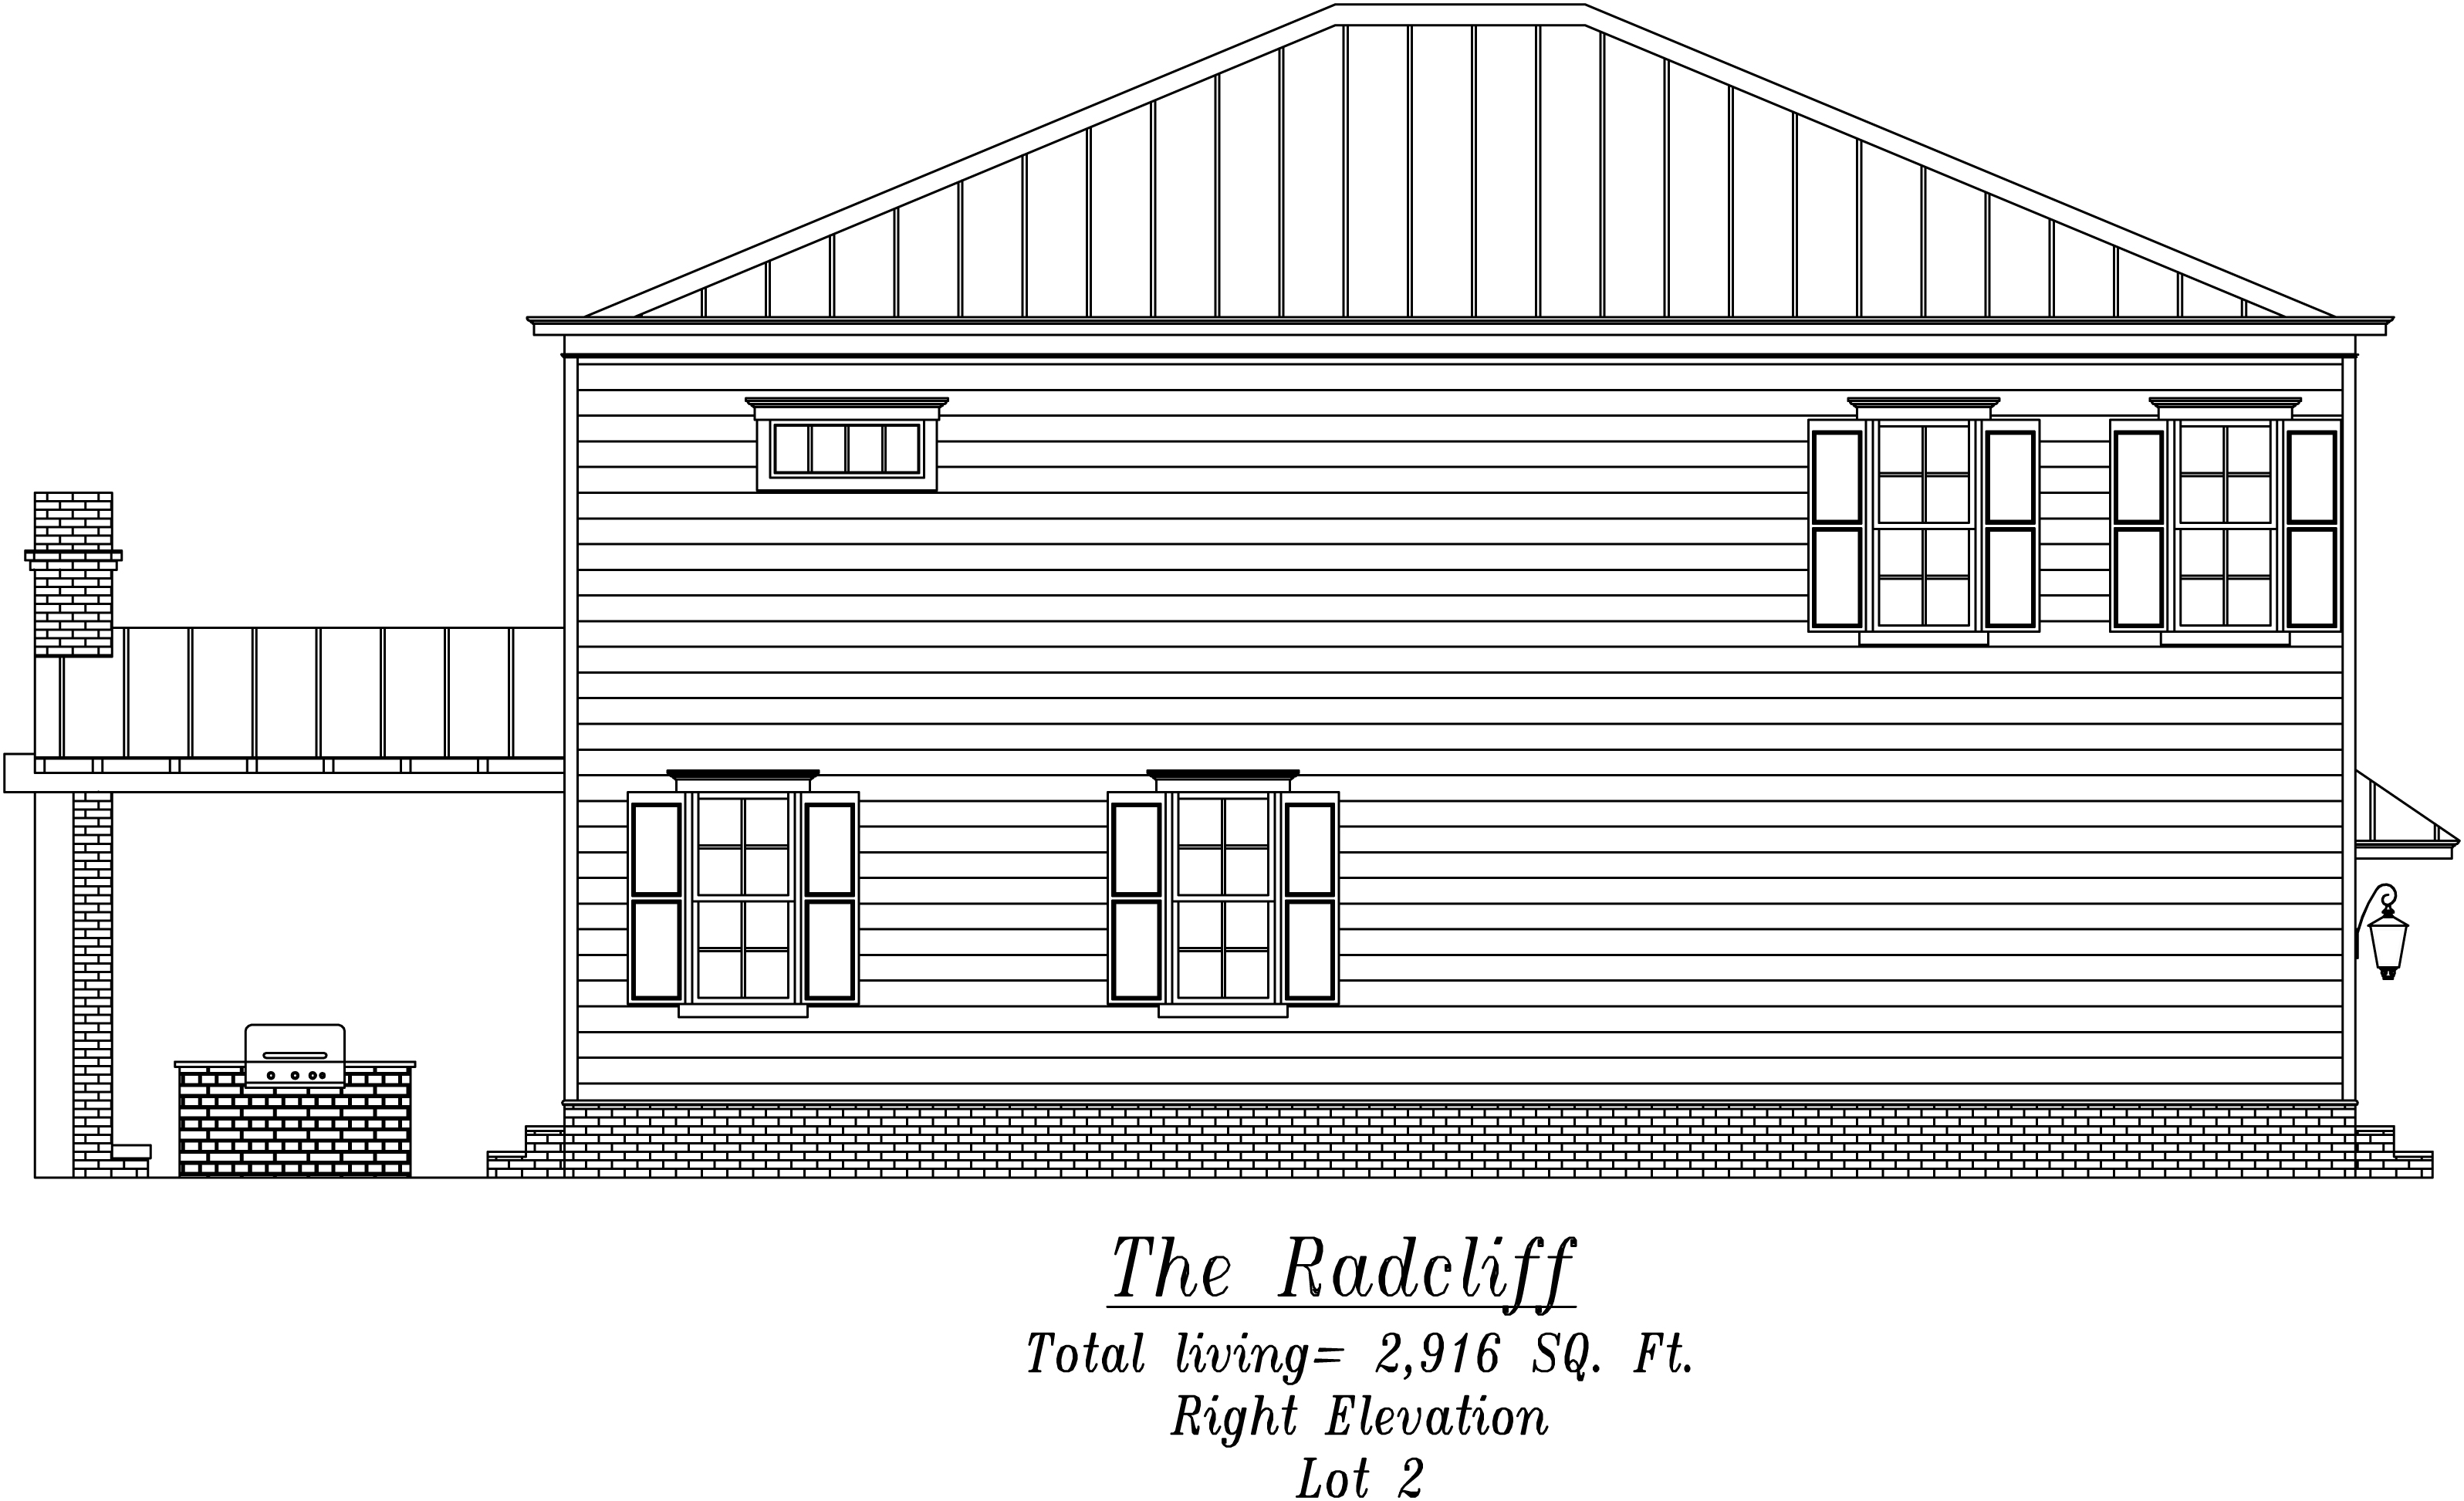 Radcliff Right Elevation